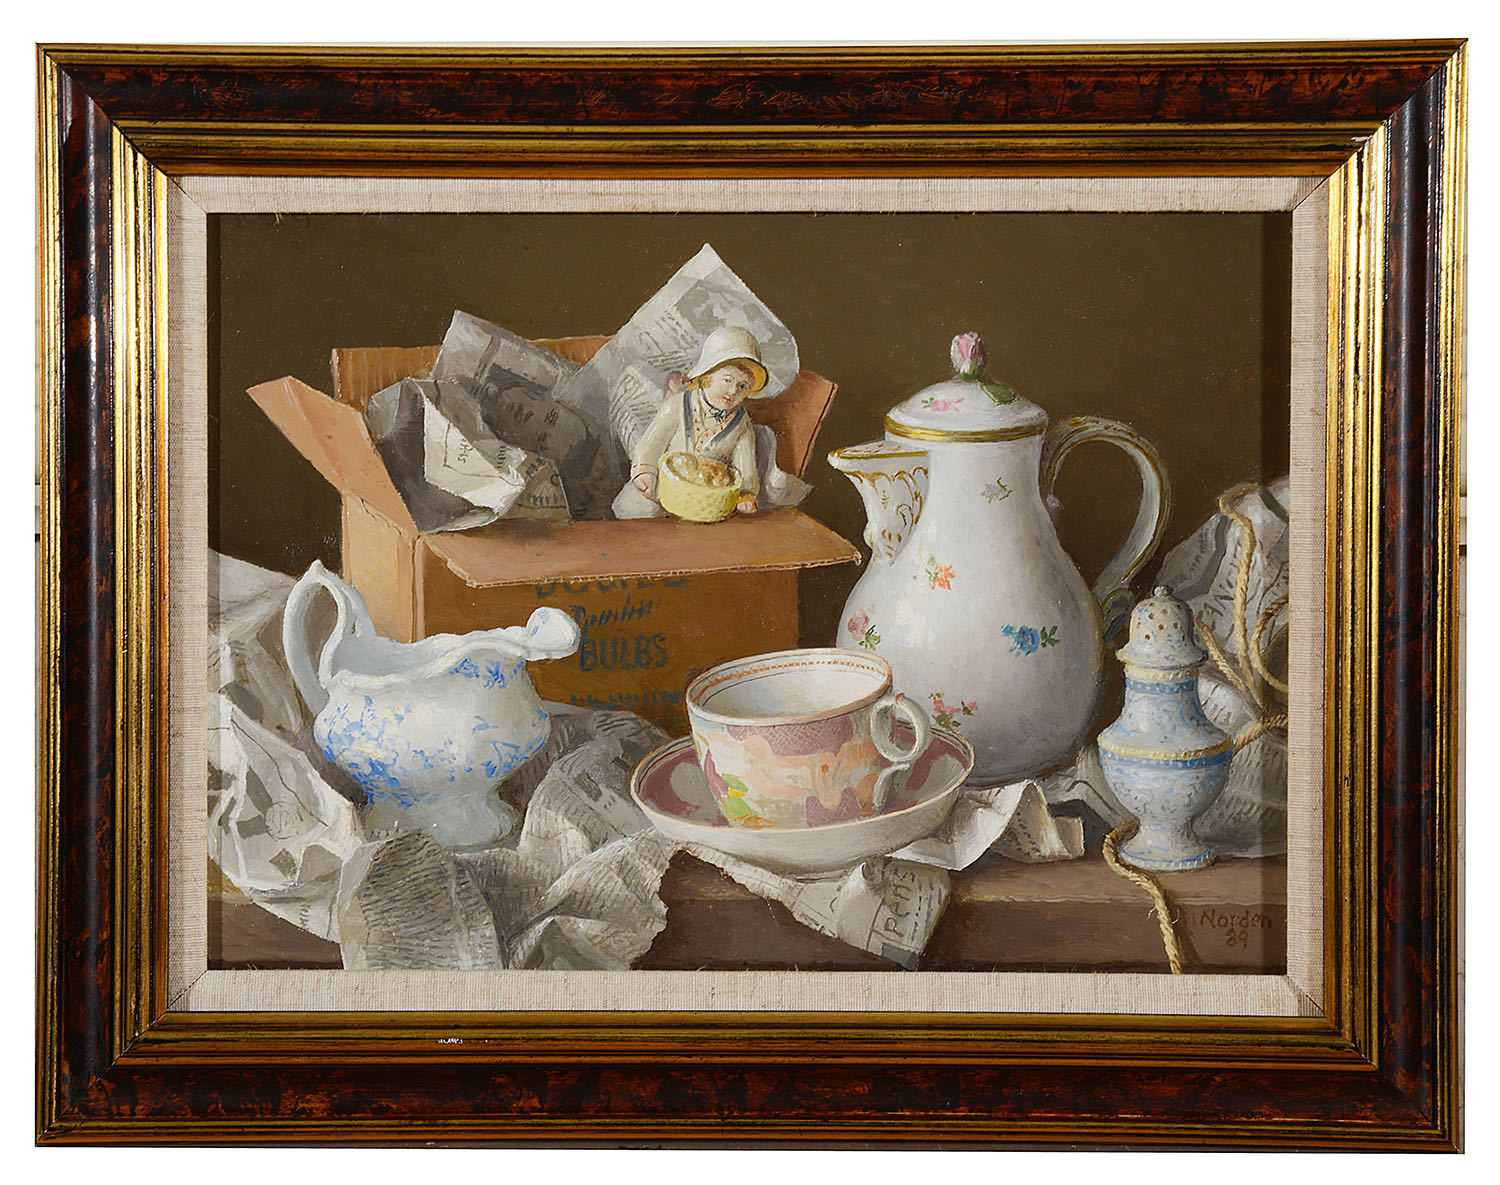 Lot 51 - Gerald Norden (1912-2000) 'New acquisitions', oil on board